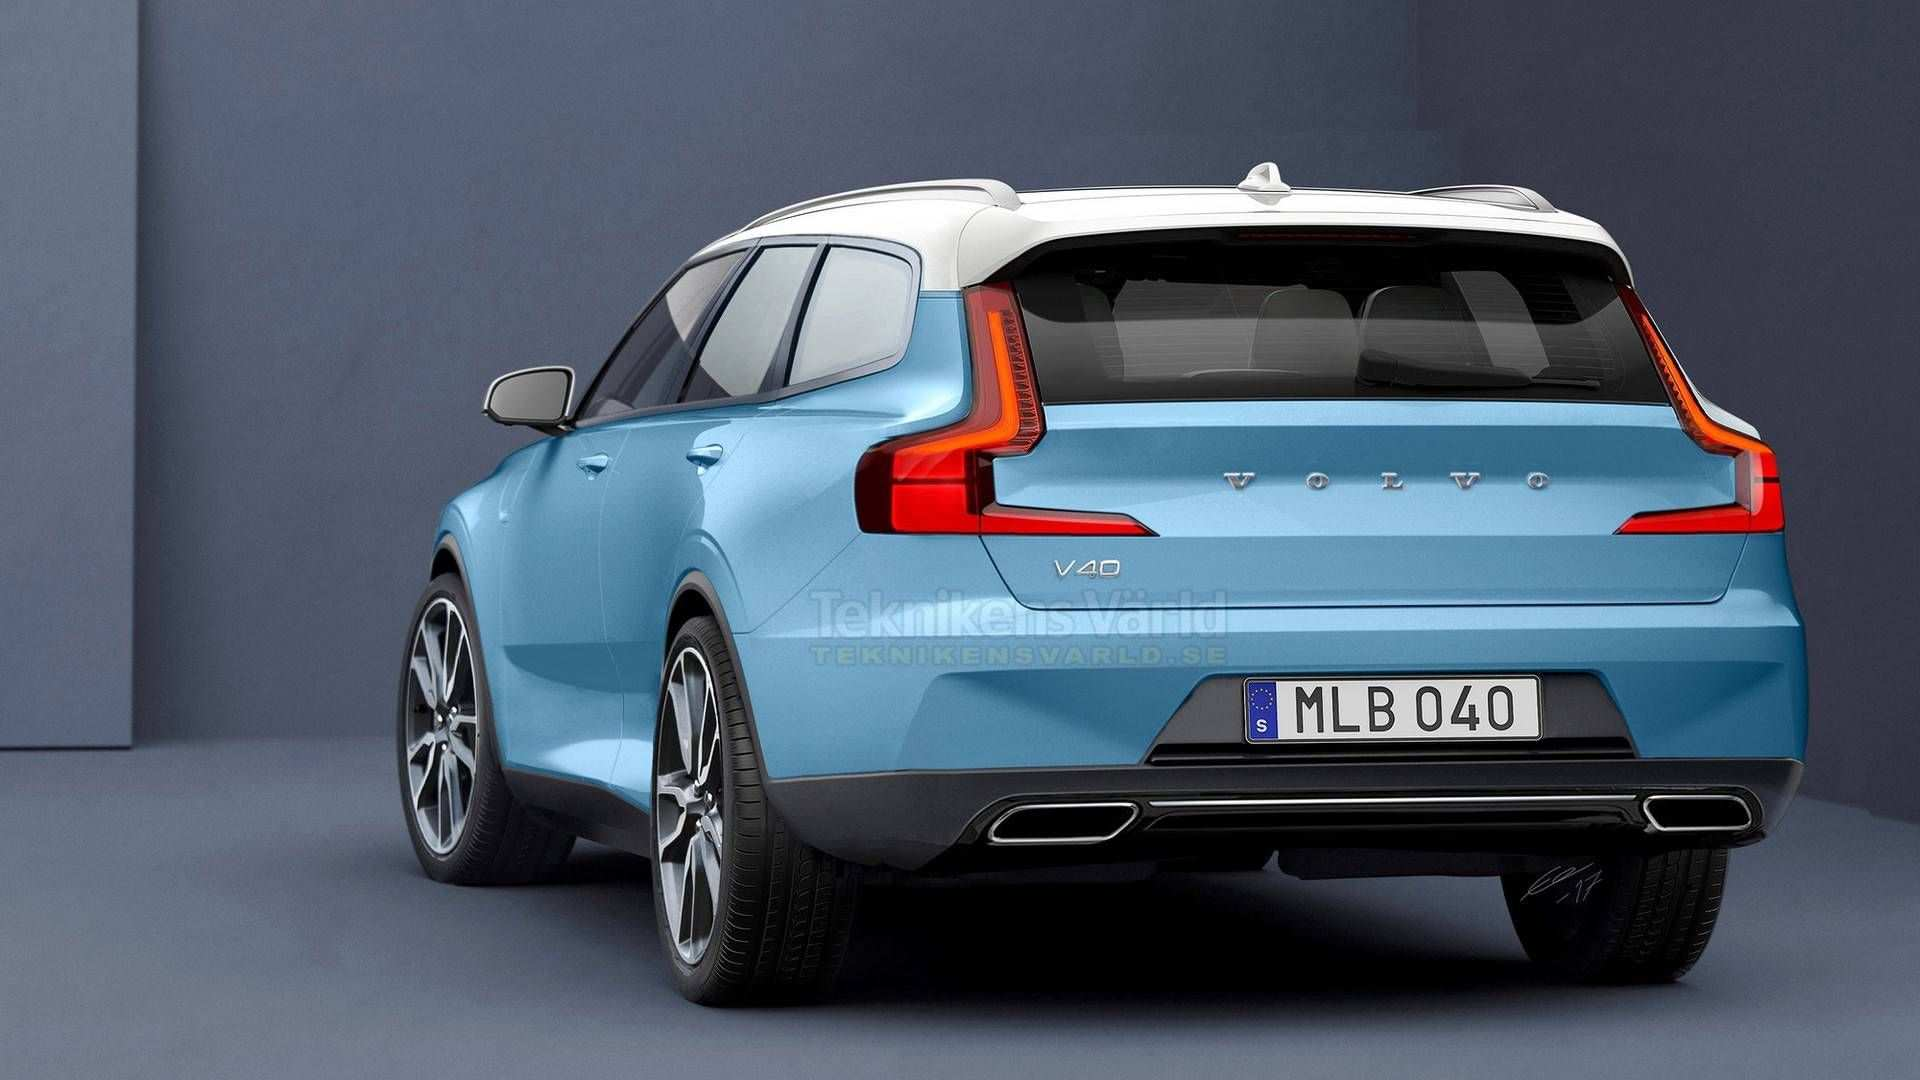 49 Best Review 2020 Volvo S40 2018 New Review for 2020 Volvo S40 2018